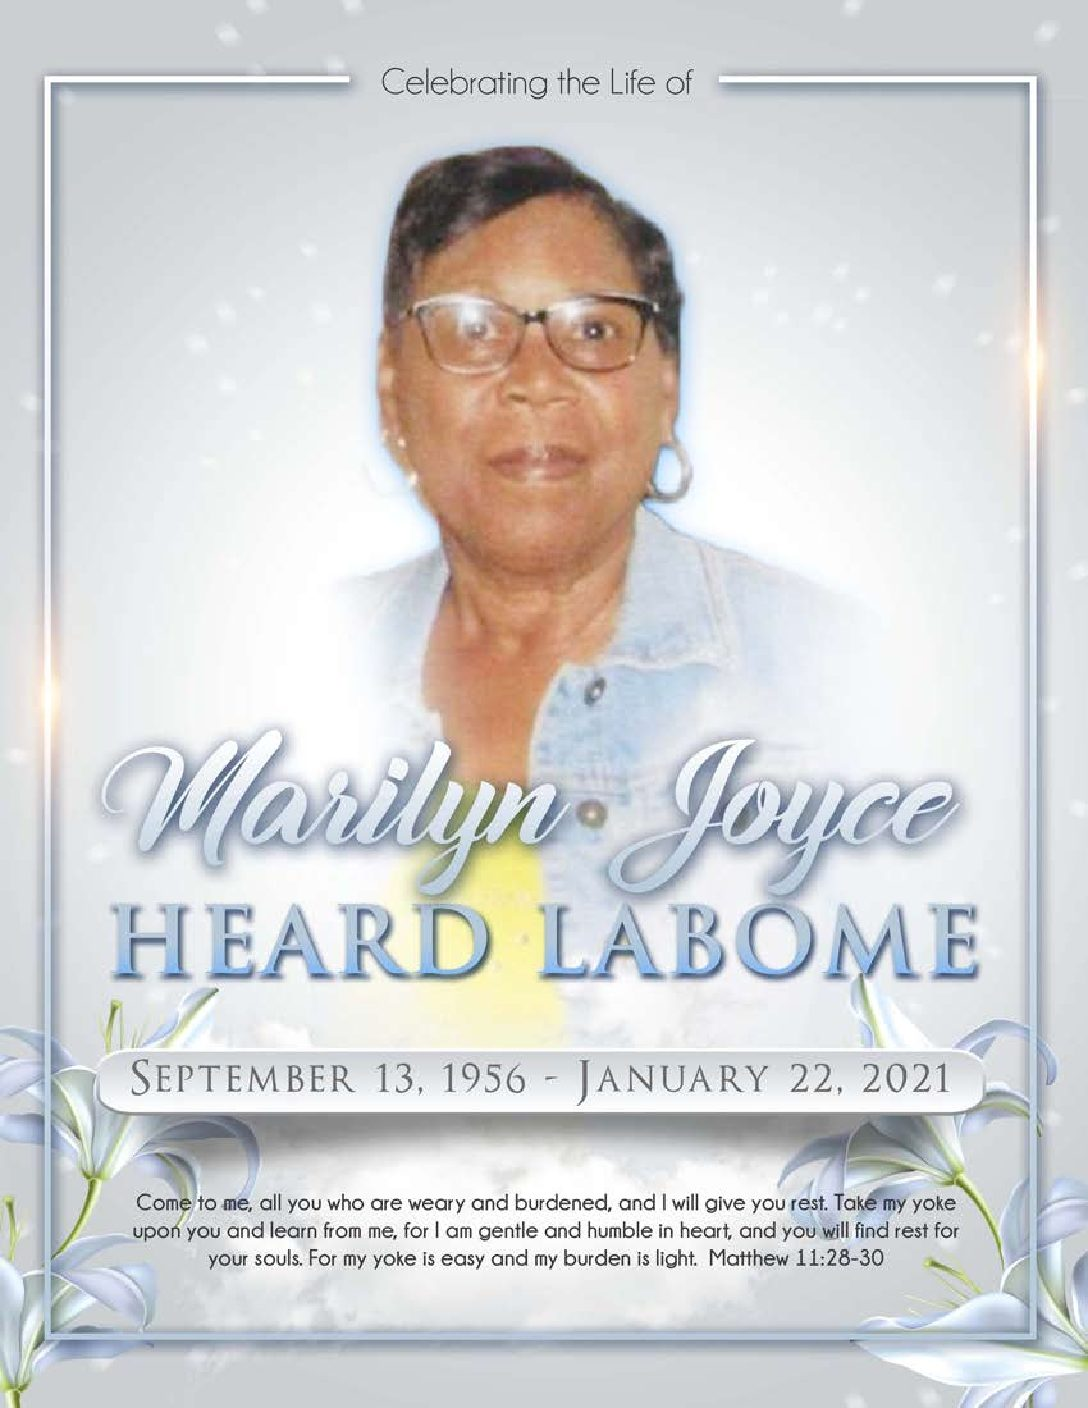 Marilyn Joyce Heard LaBome 1956-2021